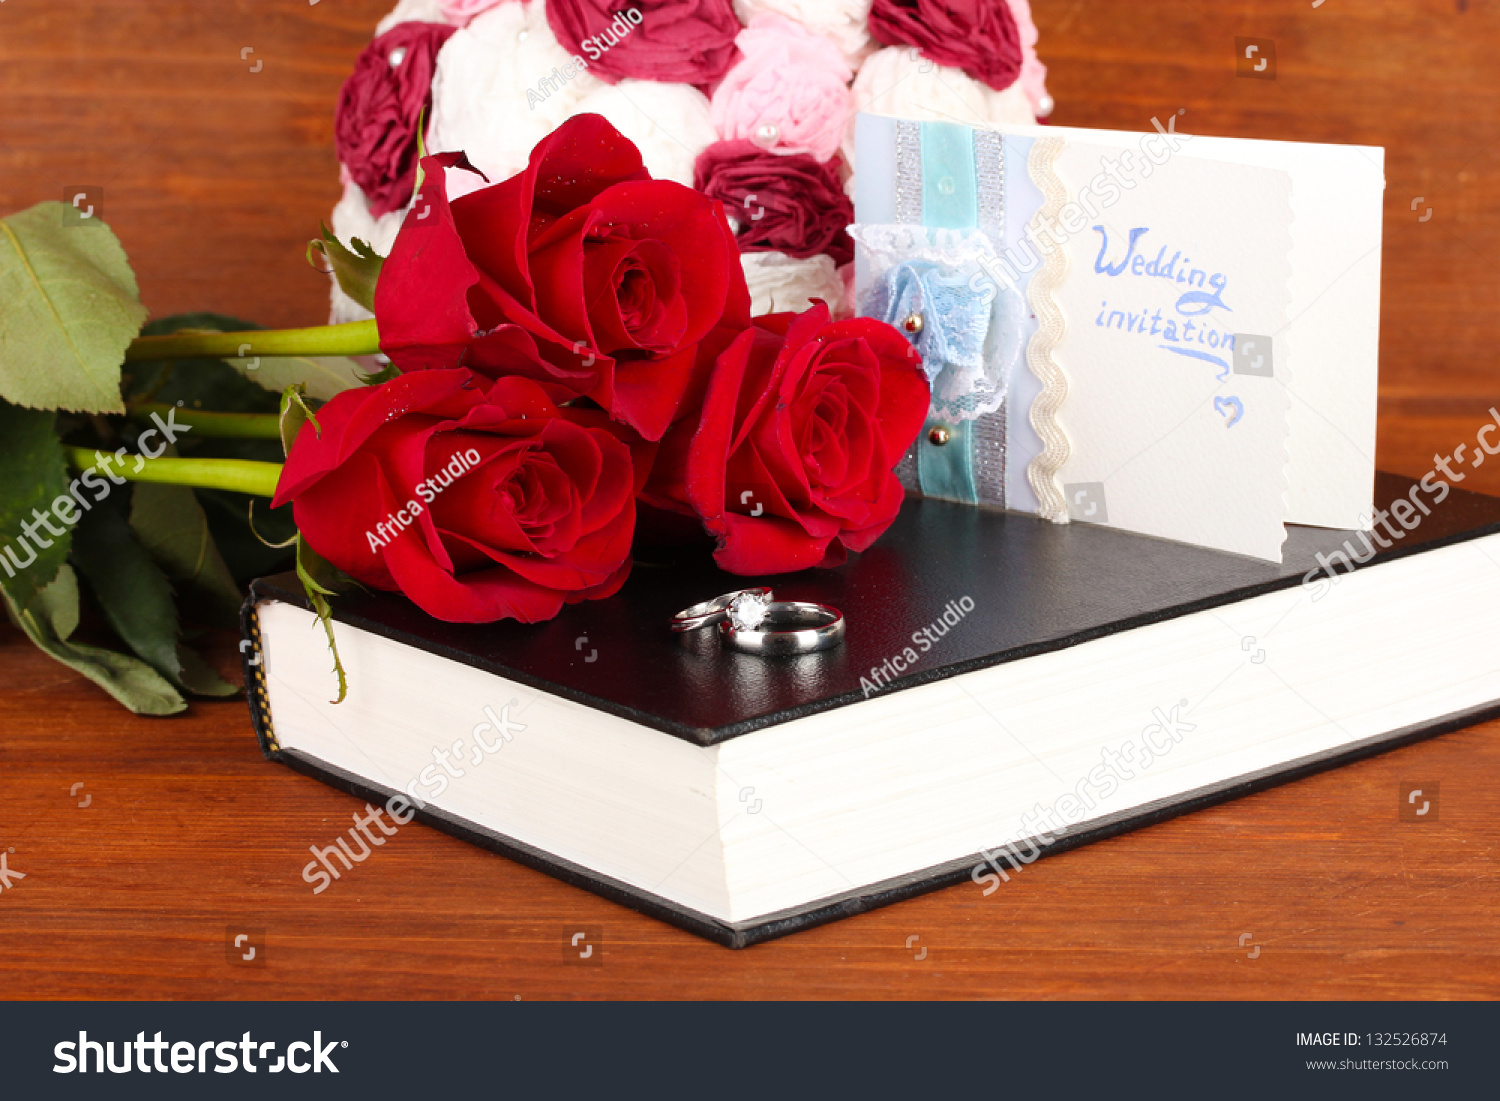 Wedding Rings Roses On Bible On Stock Photo (Edit Now) 132526874 ...